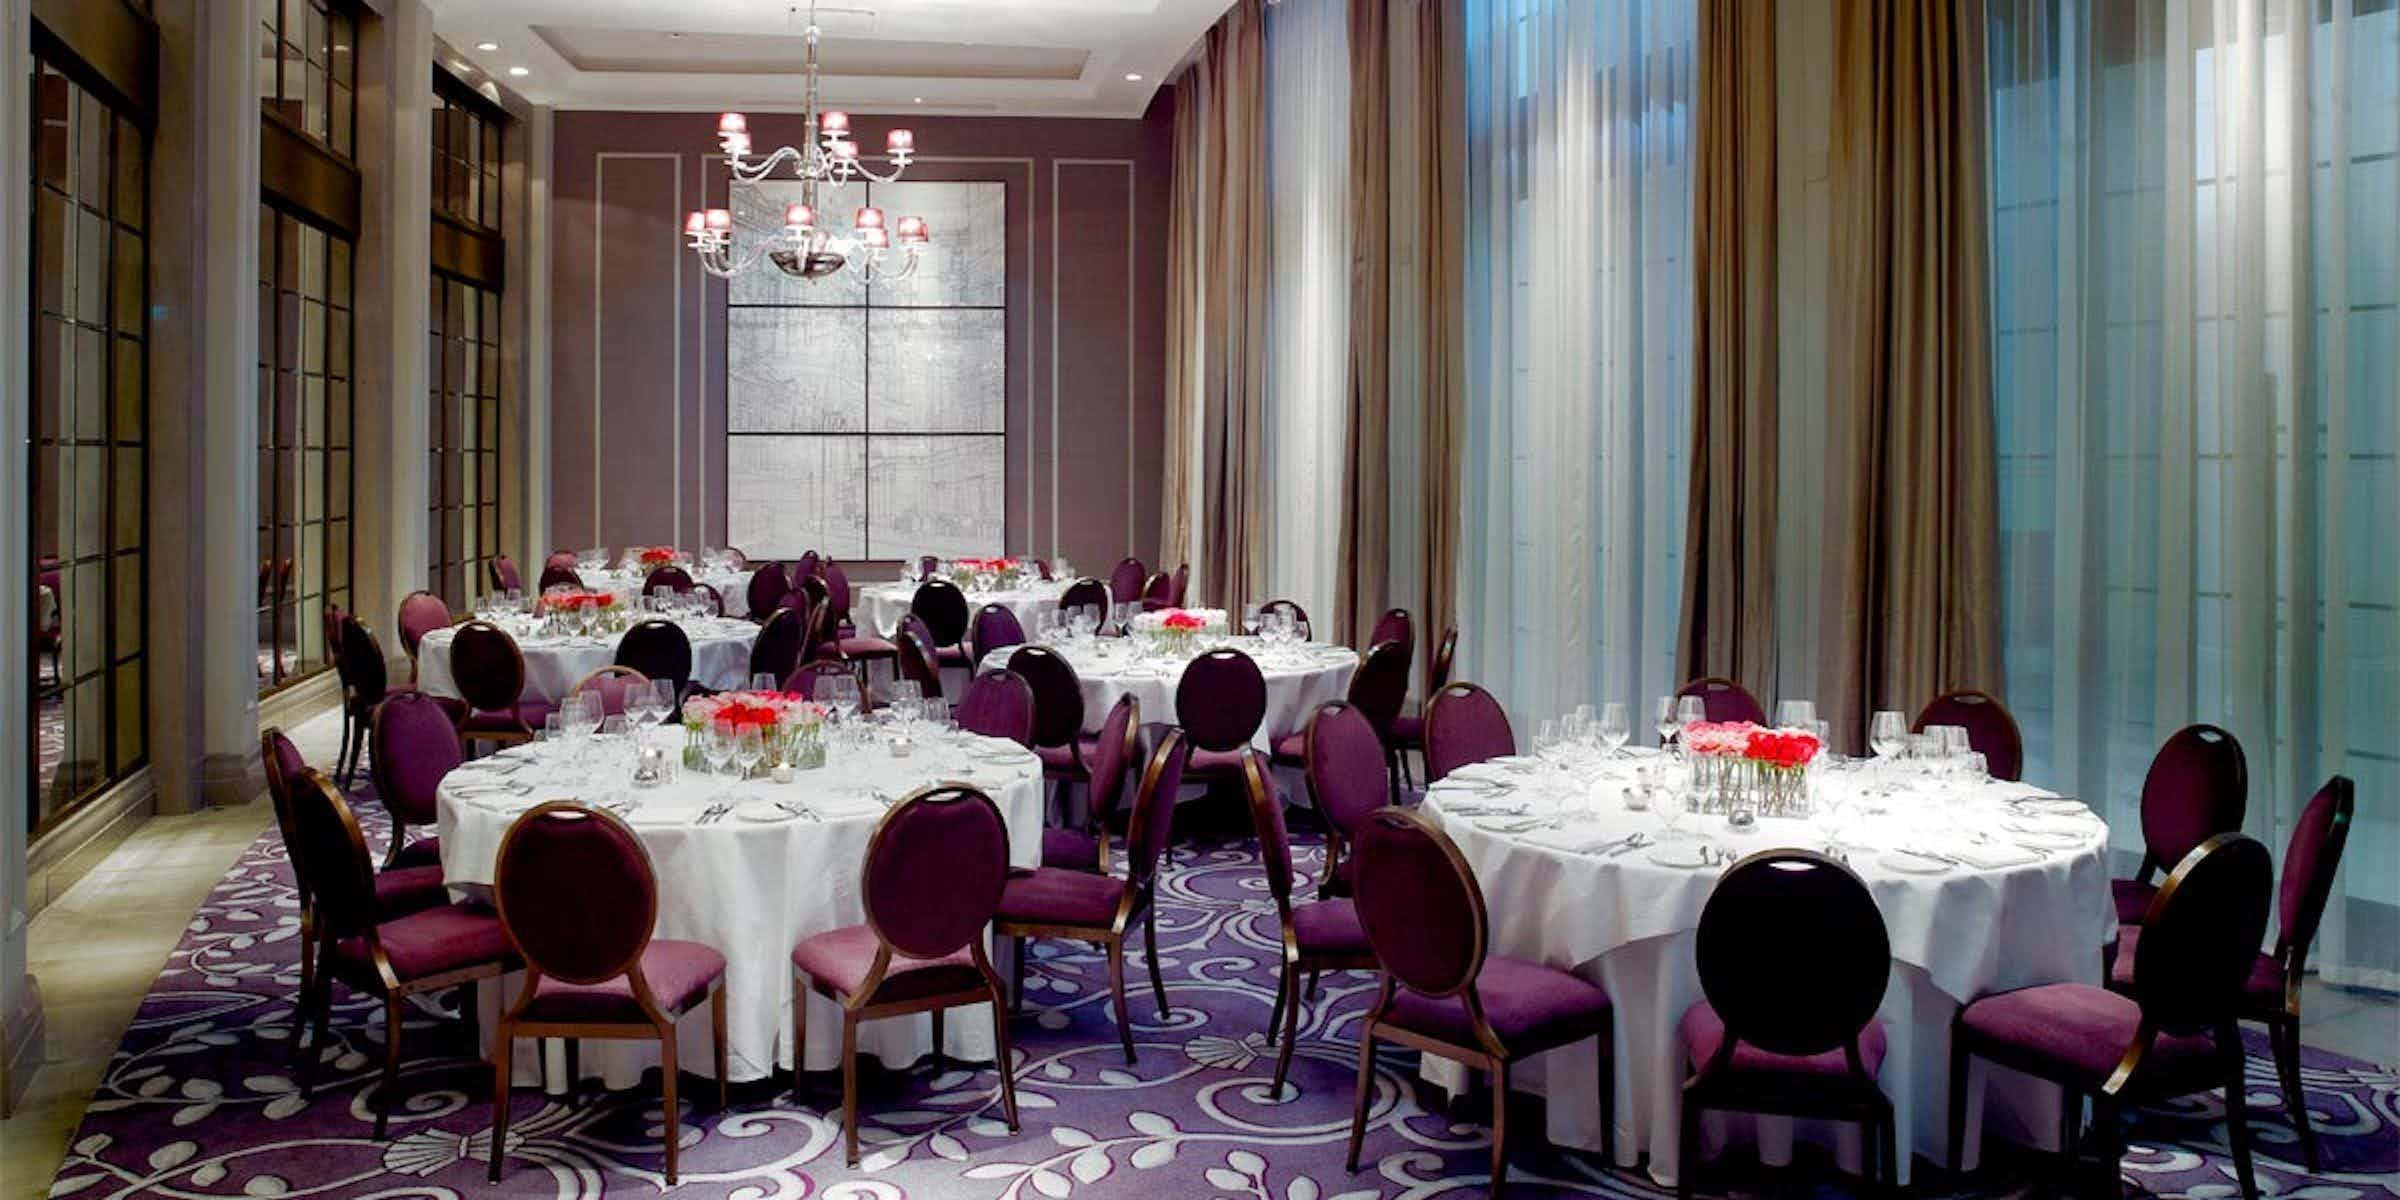 The Courtroom & Courtyard, Corinthia Hotel